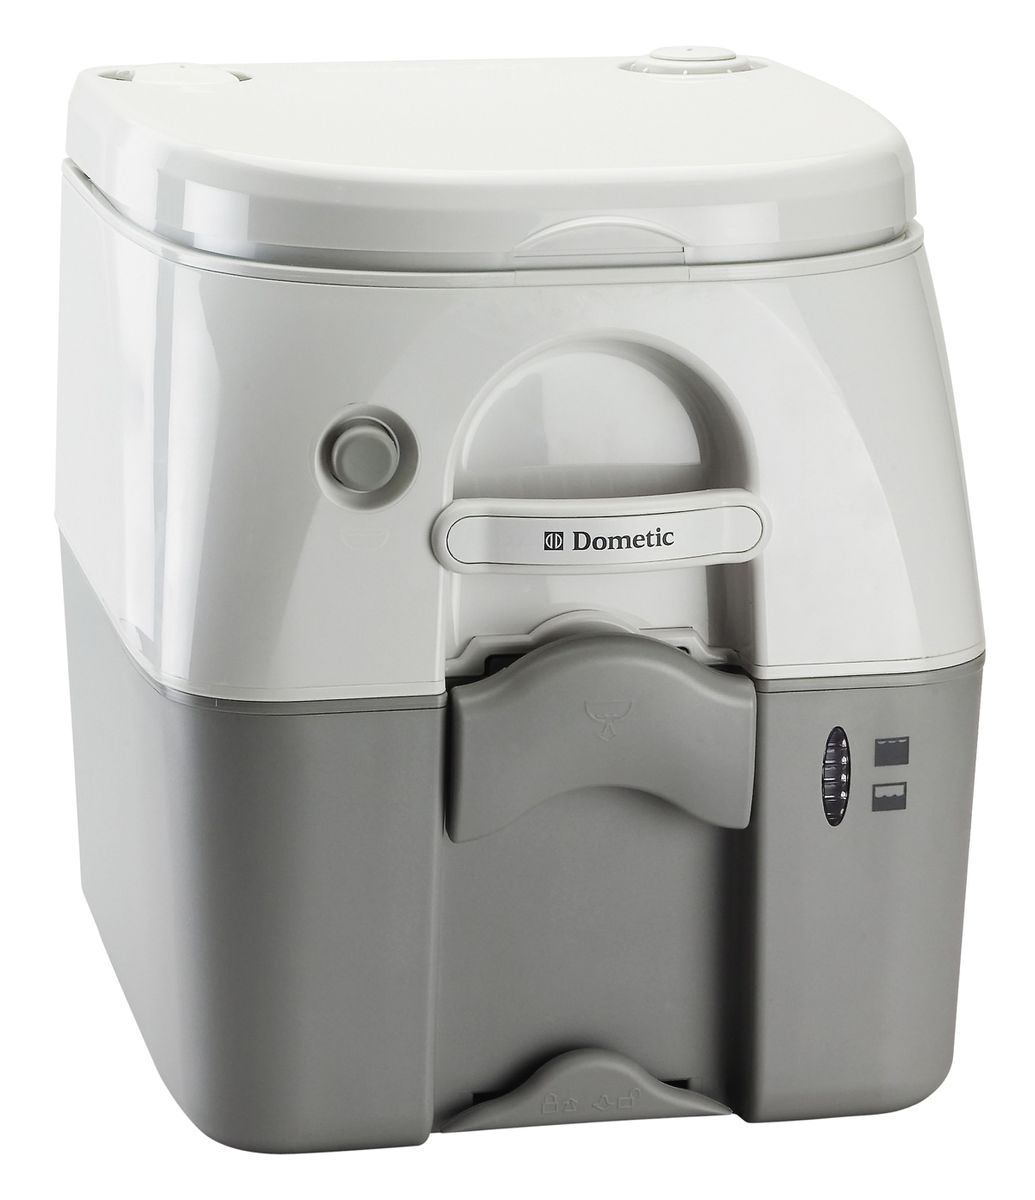 Dometic - 976 Portable Toilet - 18l Holding Tank | Buy Online in ...